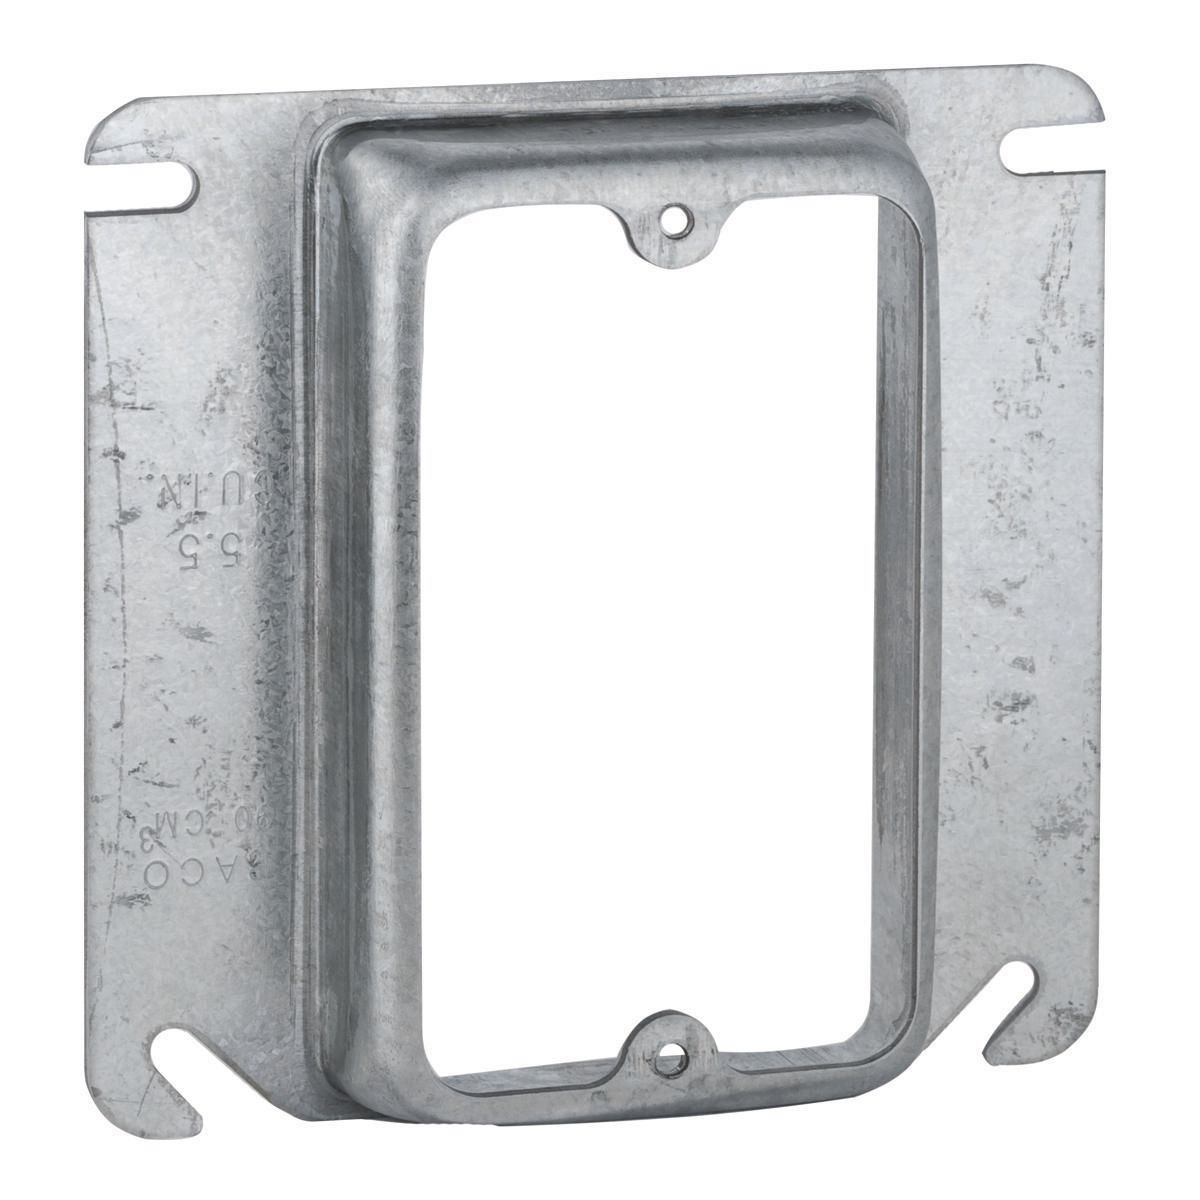 Hubbell-Raco 773 Box Cover